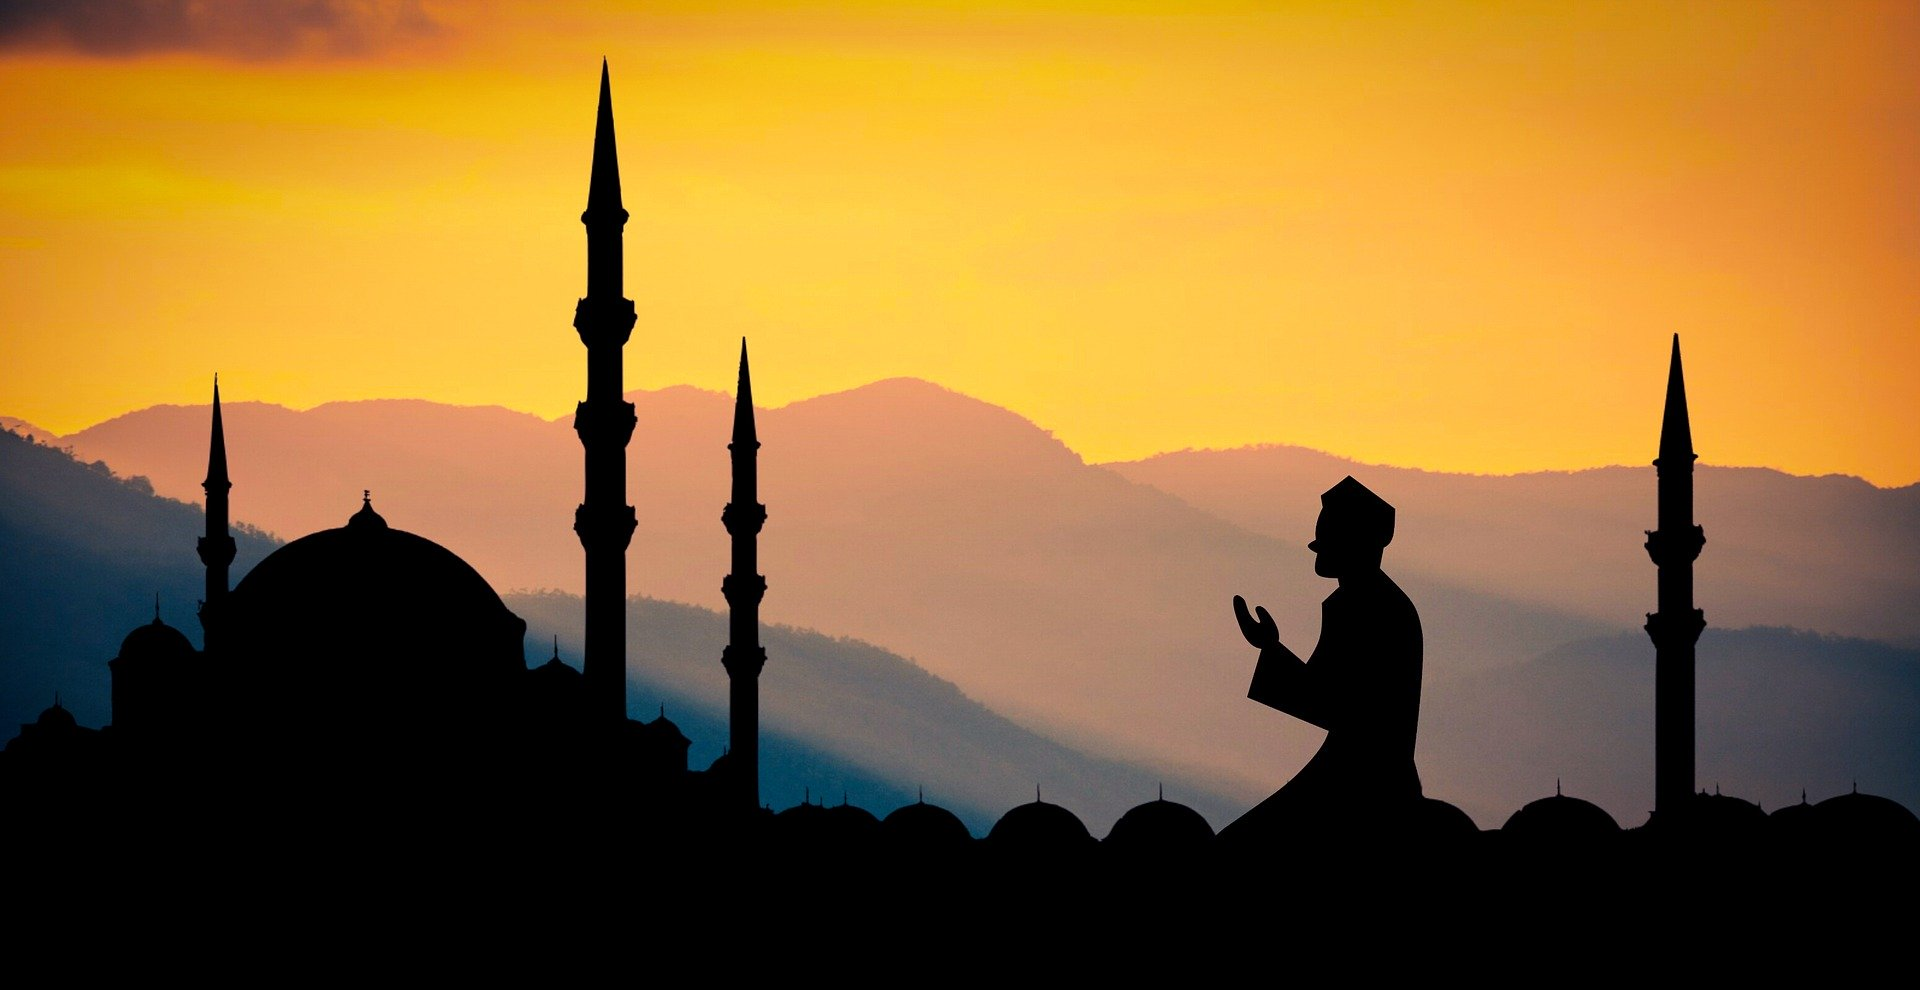 The month of Ramadan in Morocco